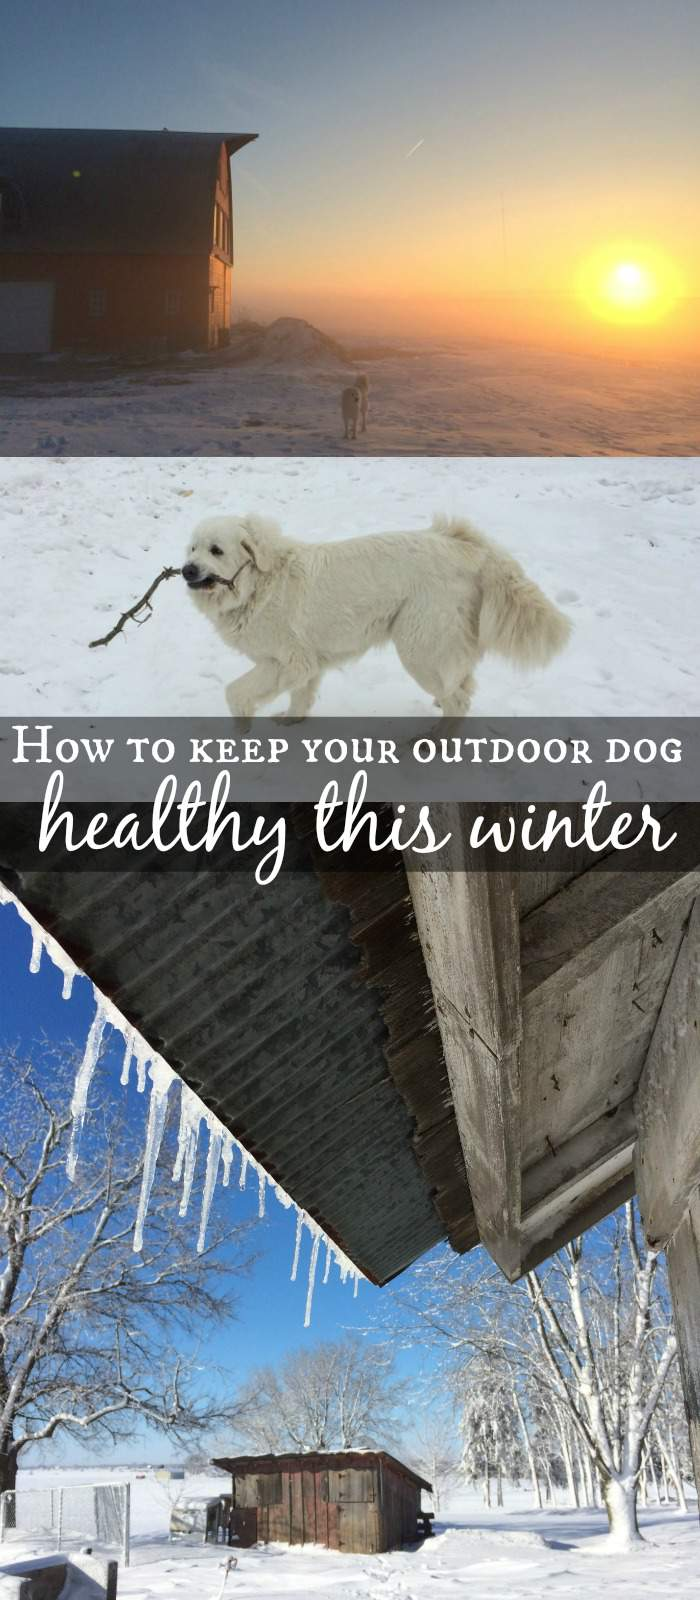 Make sure you do these things when it's cold outside to keep your outdoor dog healthy this winter.